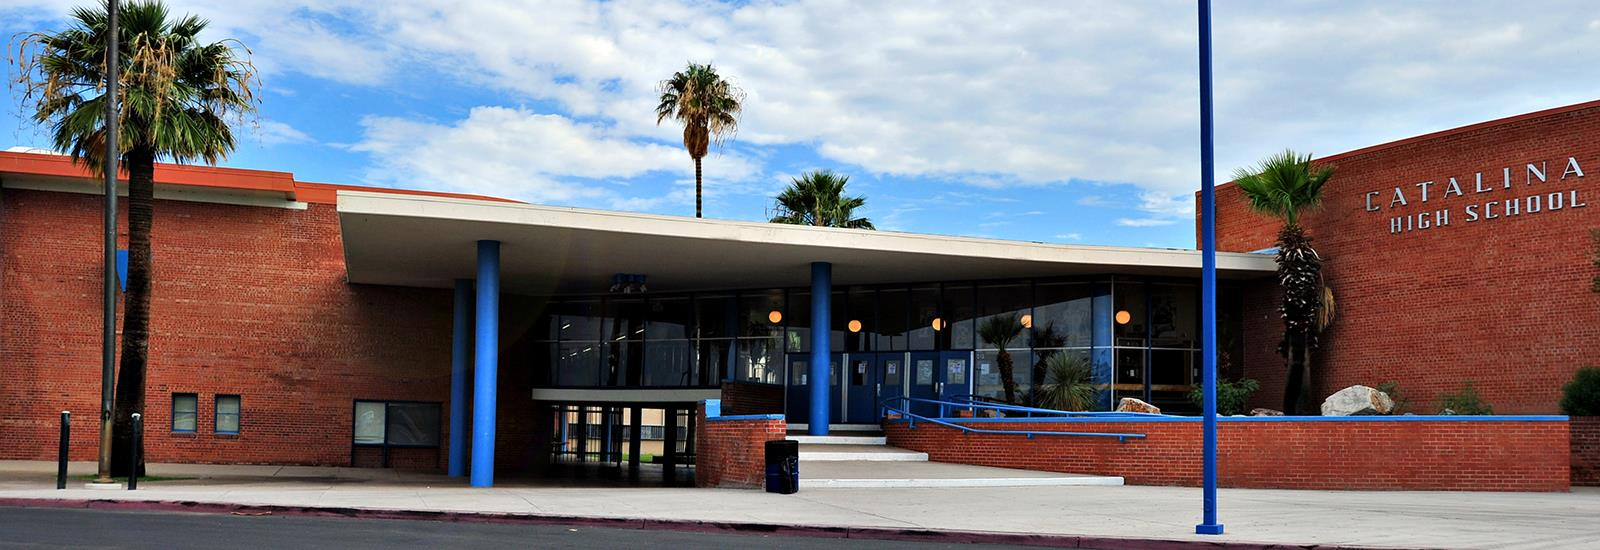 Catalina exemplifies a welcoming environment for parents and community through partnerships.